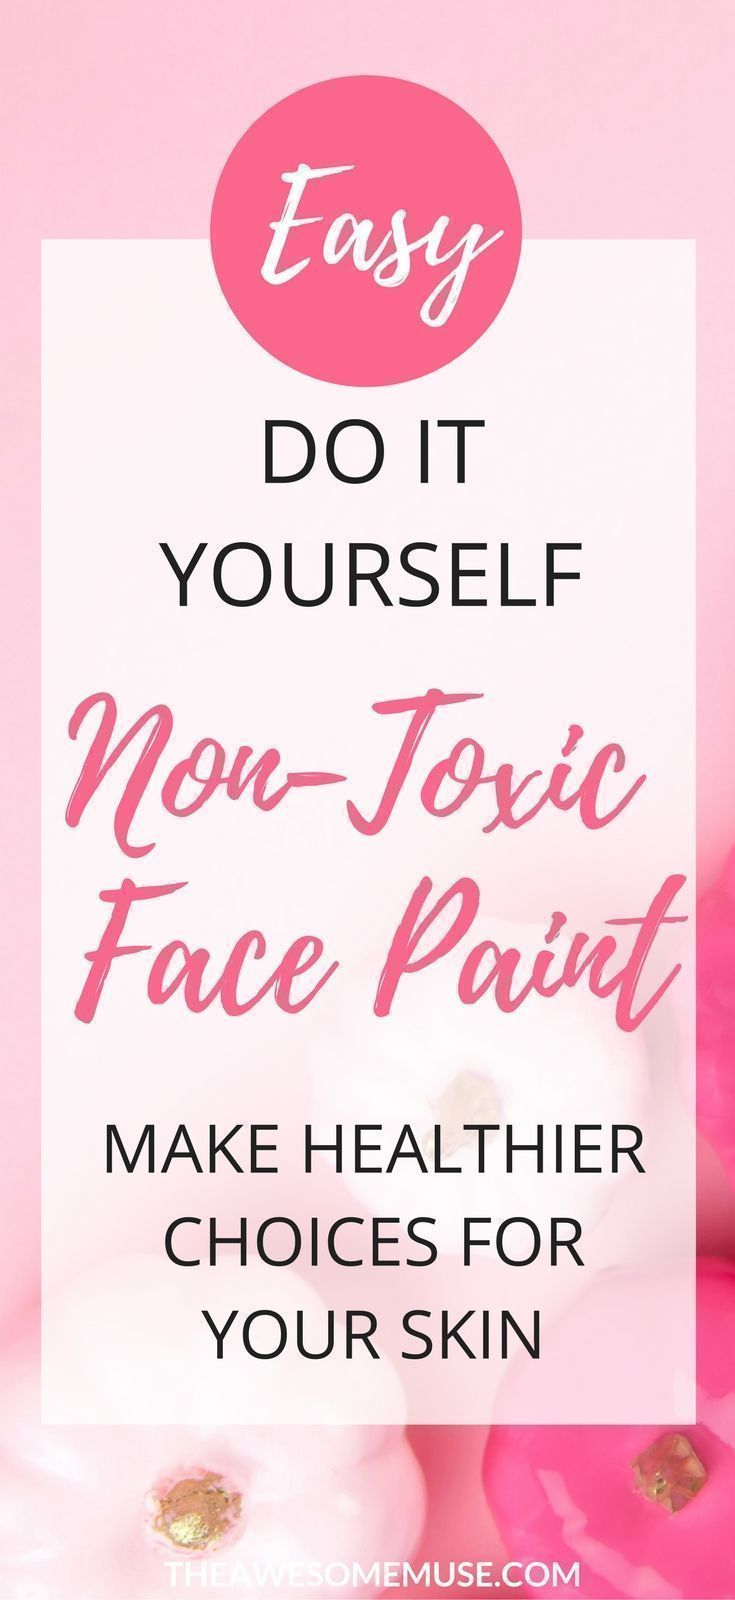 You can make non-toxic face paint easily yourself with this simple recipe diy. non-toxic face paint | face paint recipe | make face paint | facepaint for football games | how to make facepaint | facepainting ideas | facepaint halloween | facepaint ideas for kids | face painting easy | face painting adults #facepaintingideasforadults #howtofacepaint